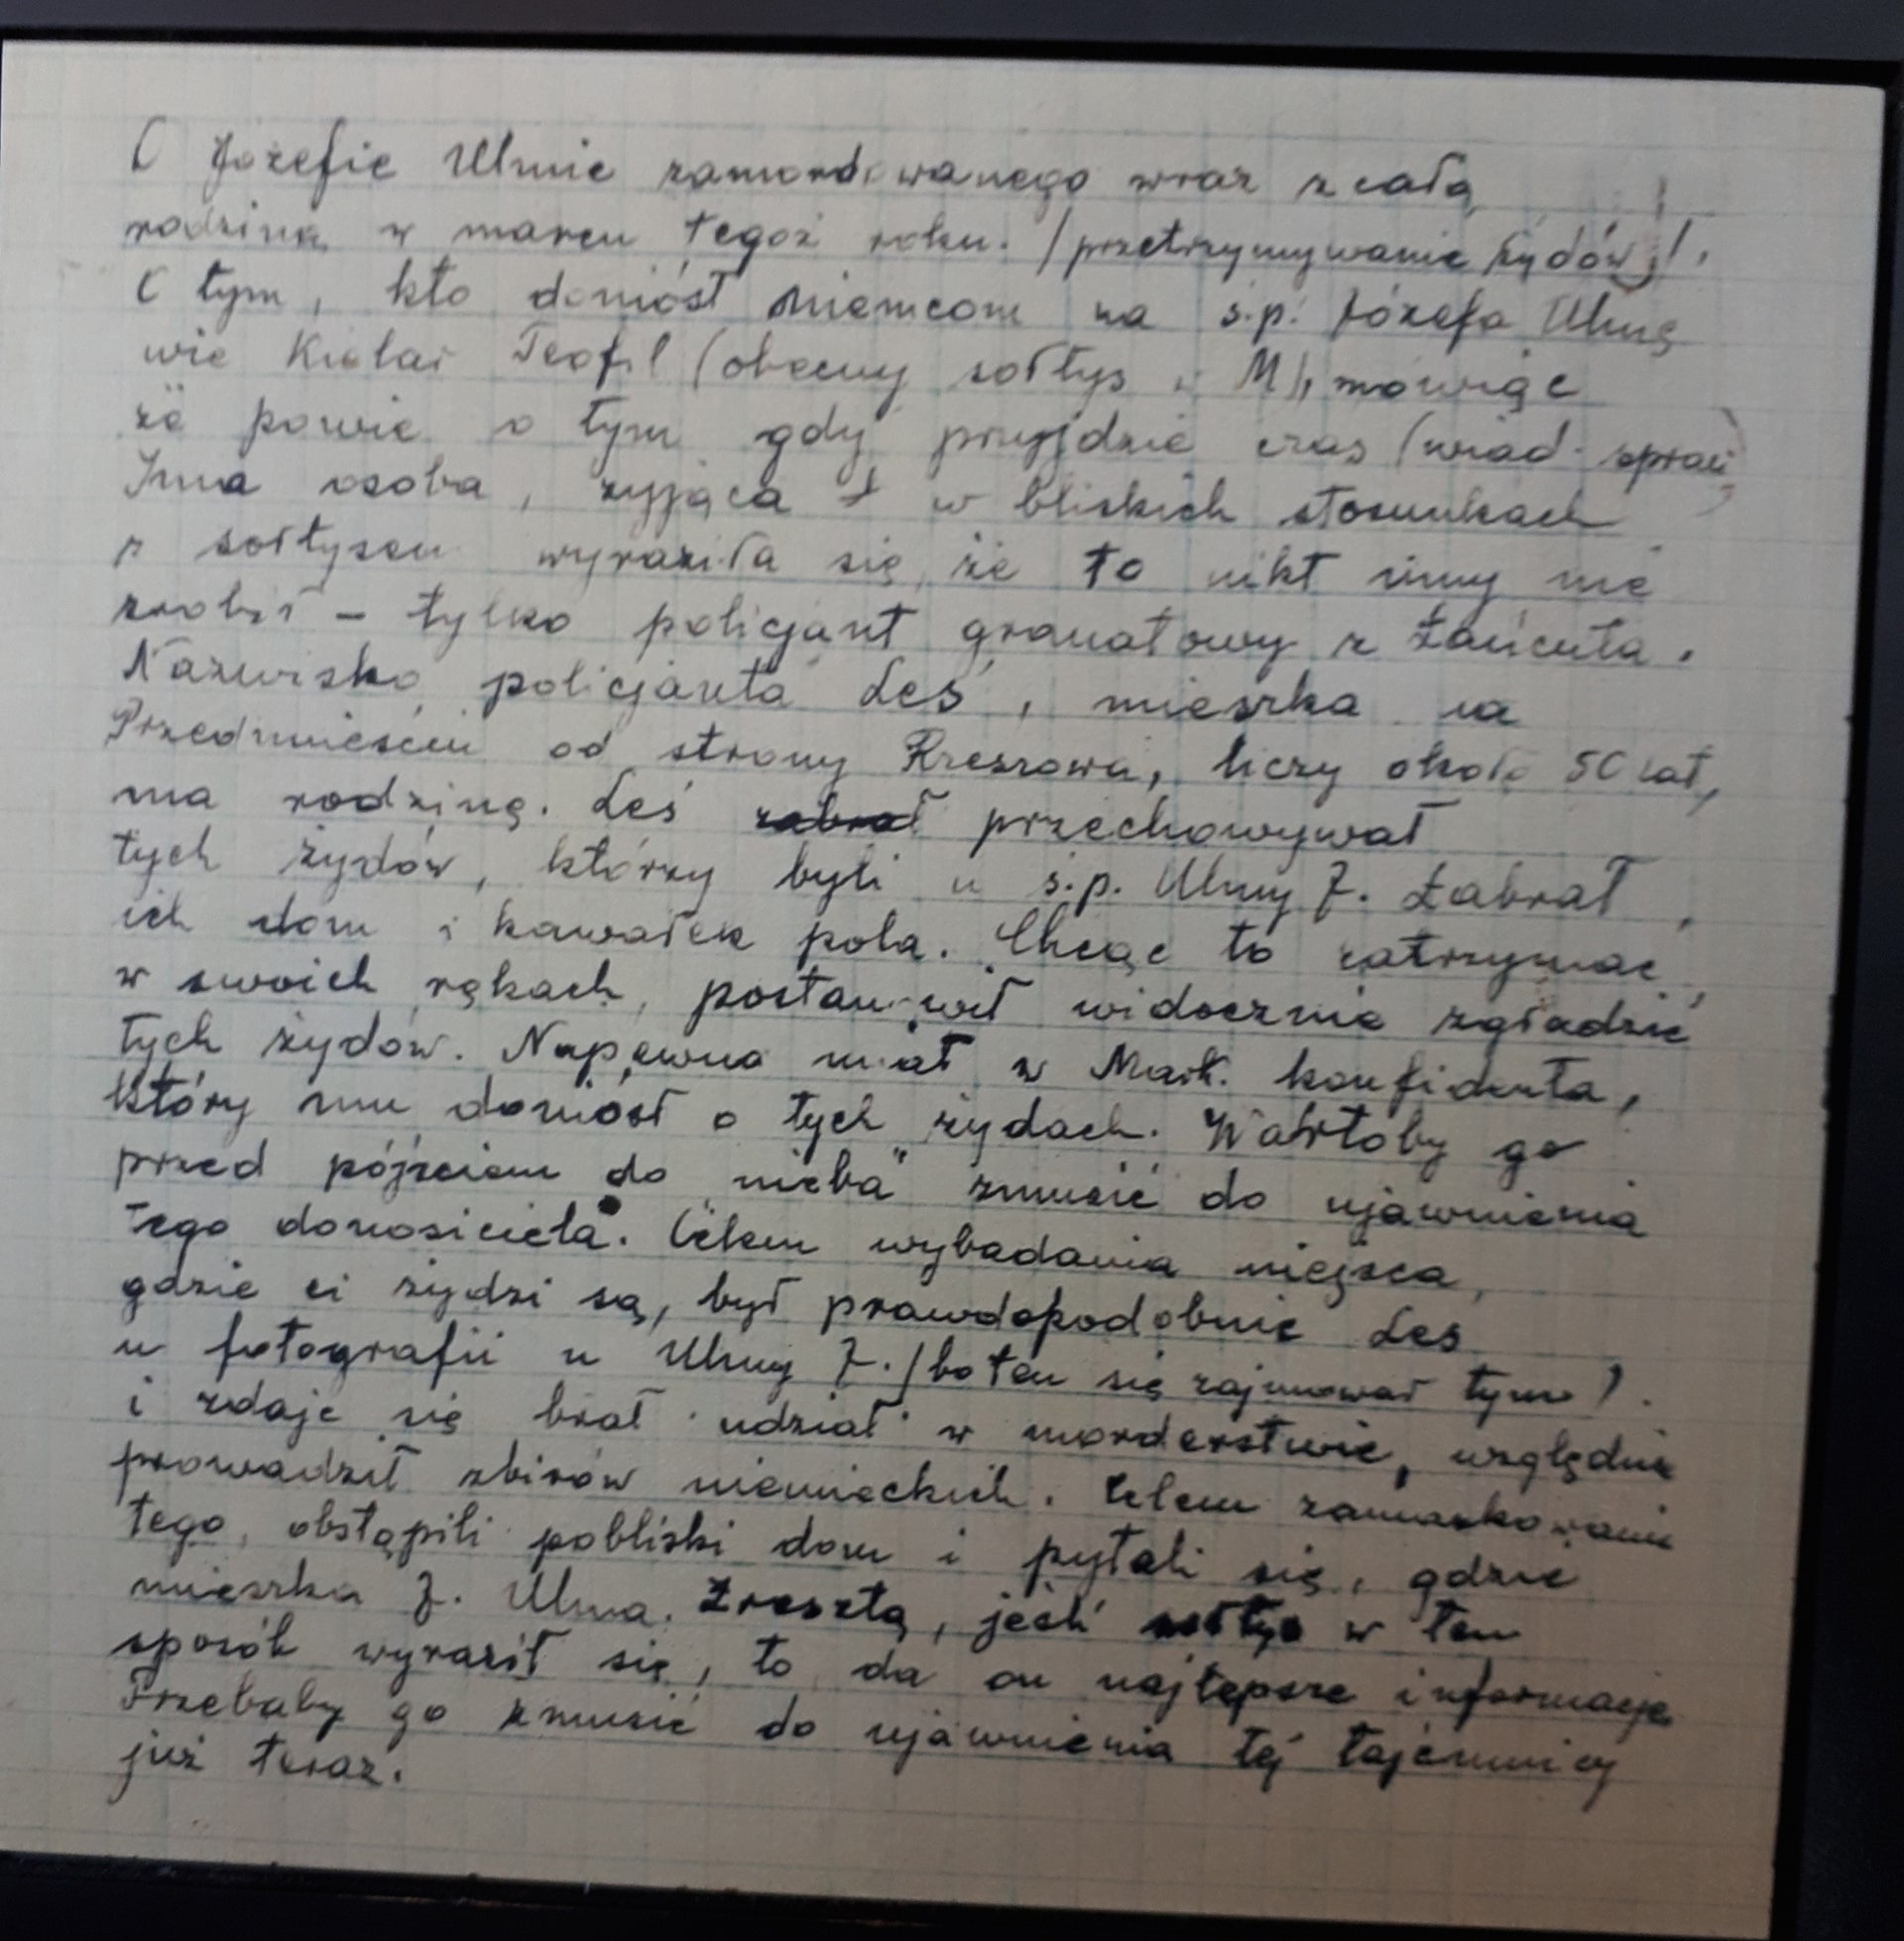 The written testimony by the mayor of Markowa, accusing a local policeman of tipping off the Nazis about the Ulma family sheltering nine Jews during World War II.